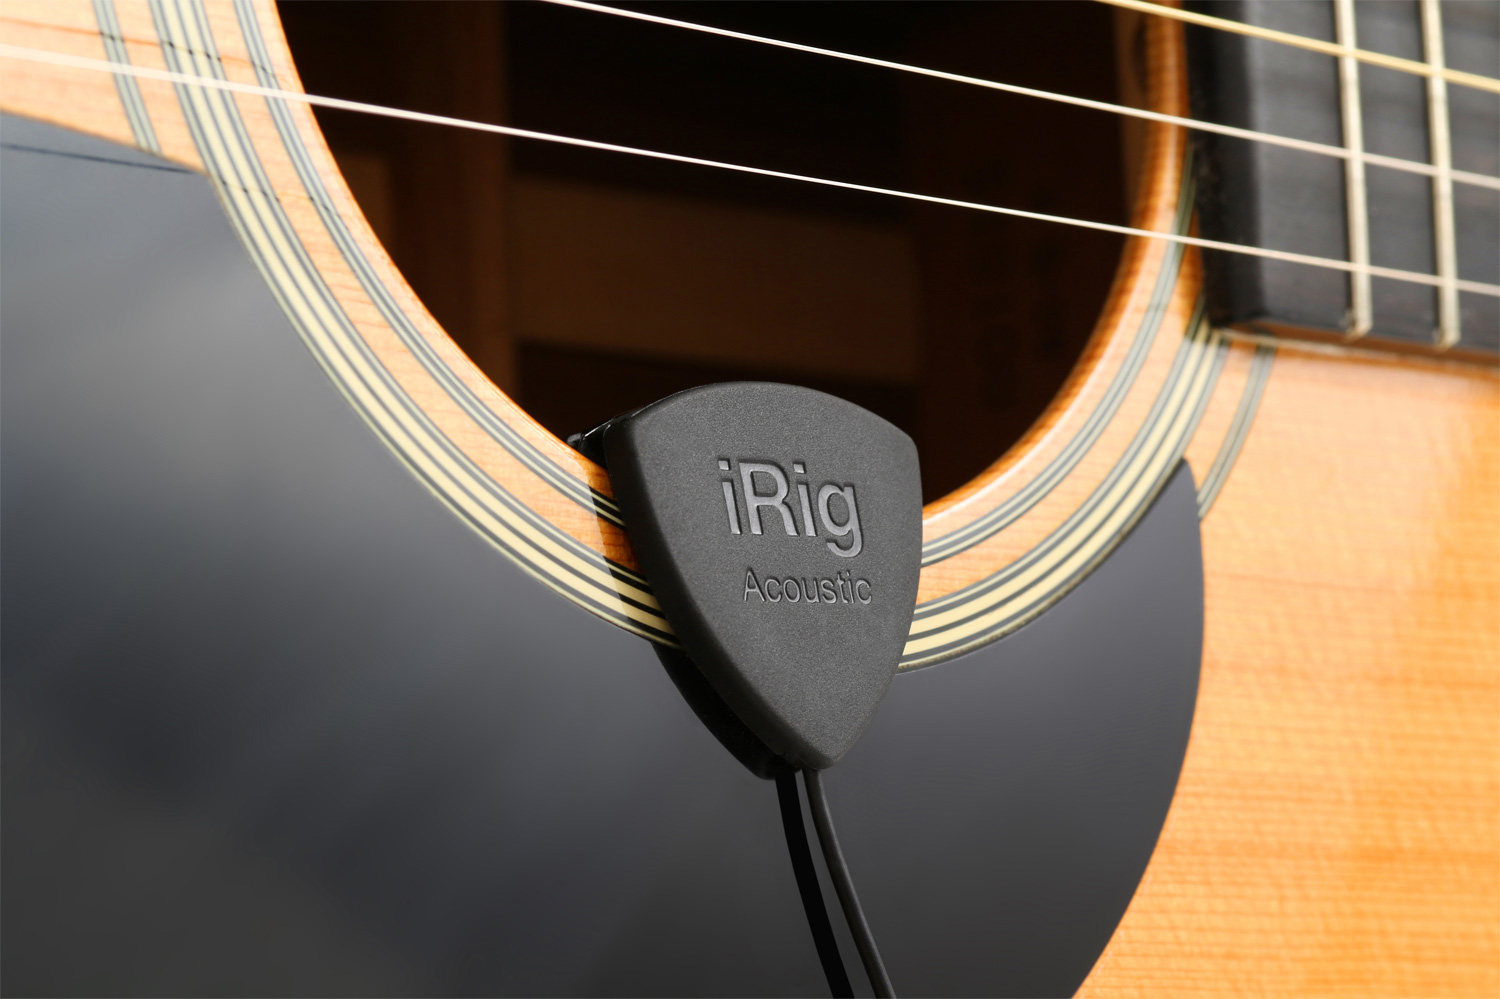 micro guitare acoustique test